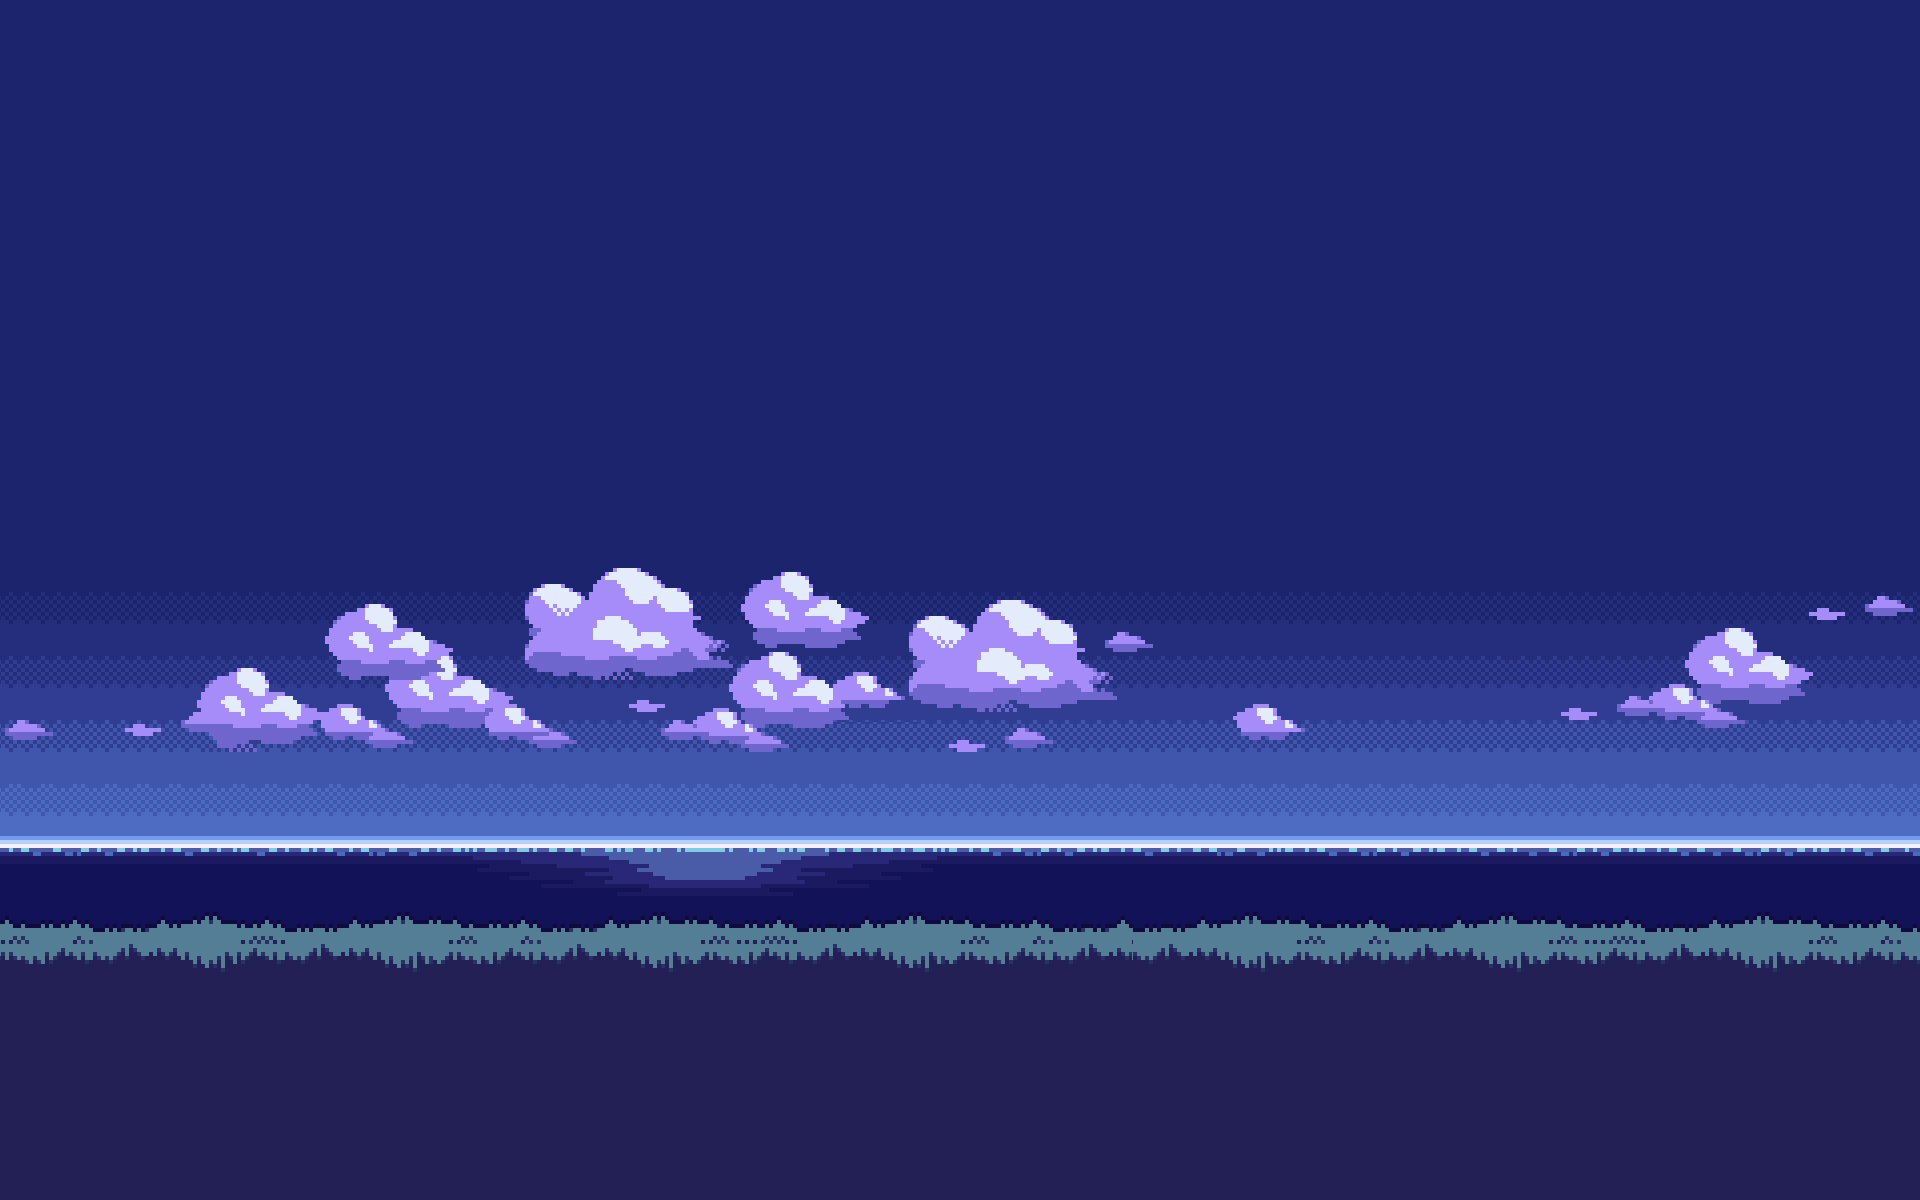 8 Bit Background